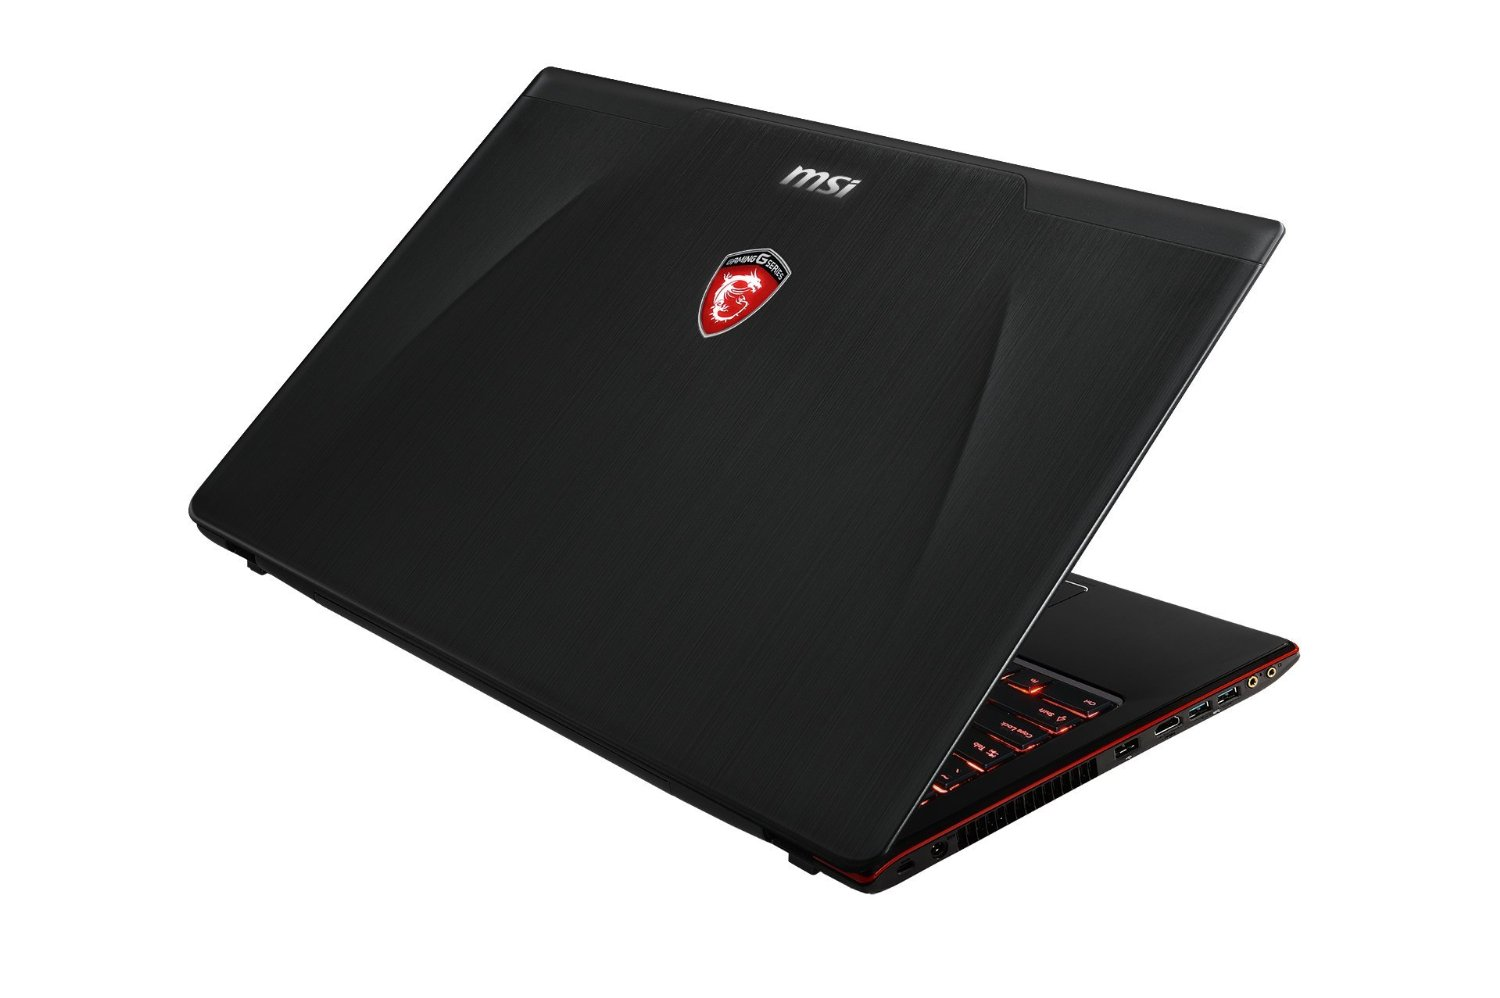 Conclusion: Worth Considering - MSI GE60 Review: Mainstream Mobile